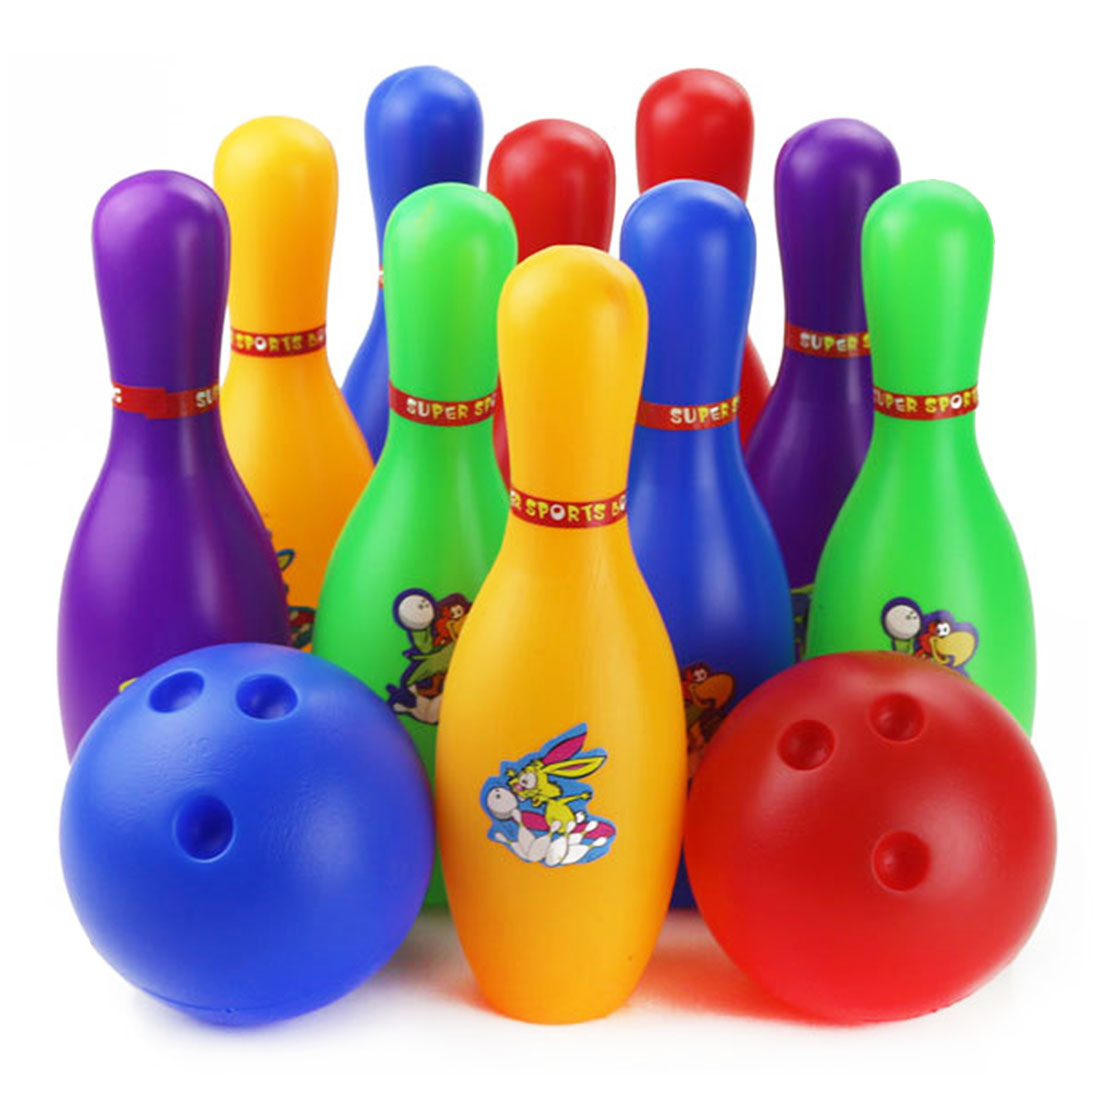 Colorful Standard 12 Piece Bowling Set w/ 10 Pins, 2 Bowling Balls Children Kids Educati ...